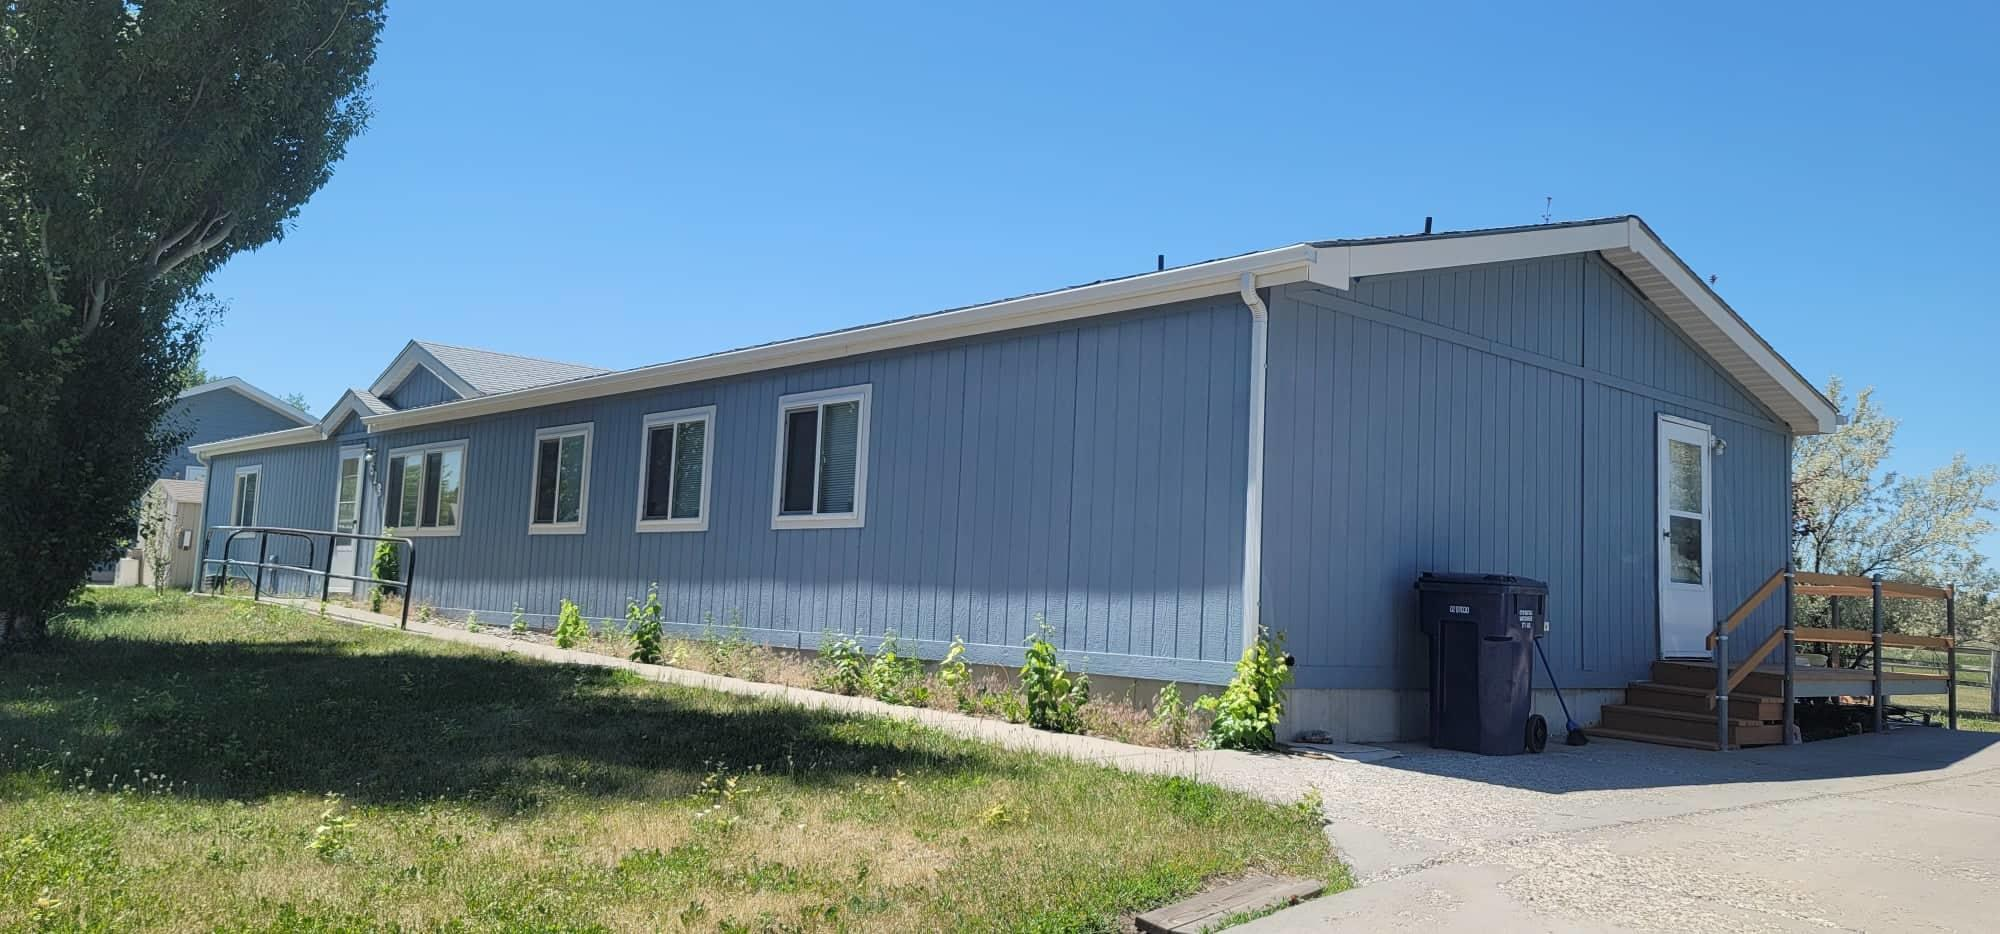 Bring this beautiful ONE LEVEL home back to its shine!  East end home close to Malmstrom Air Force Base. 1993 manufactured home on permanent foundation. Imagine enjoying Montana sunsets from your back deck. Spacious 4 bedrooms/ 2 Bath with separate living room and family room. Den could be used as office or a toy room. Need some TLC but has great potential.Property sells in ''AS IS'' condition. Listed by Dori Johnson.